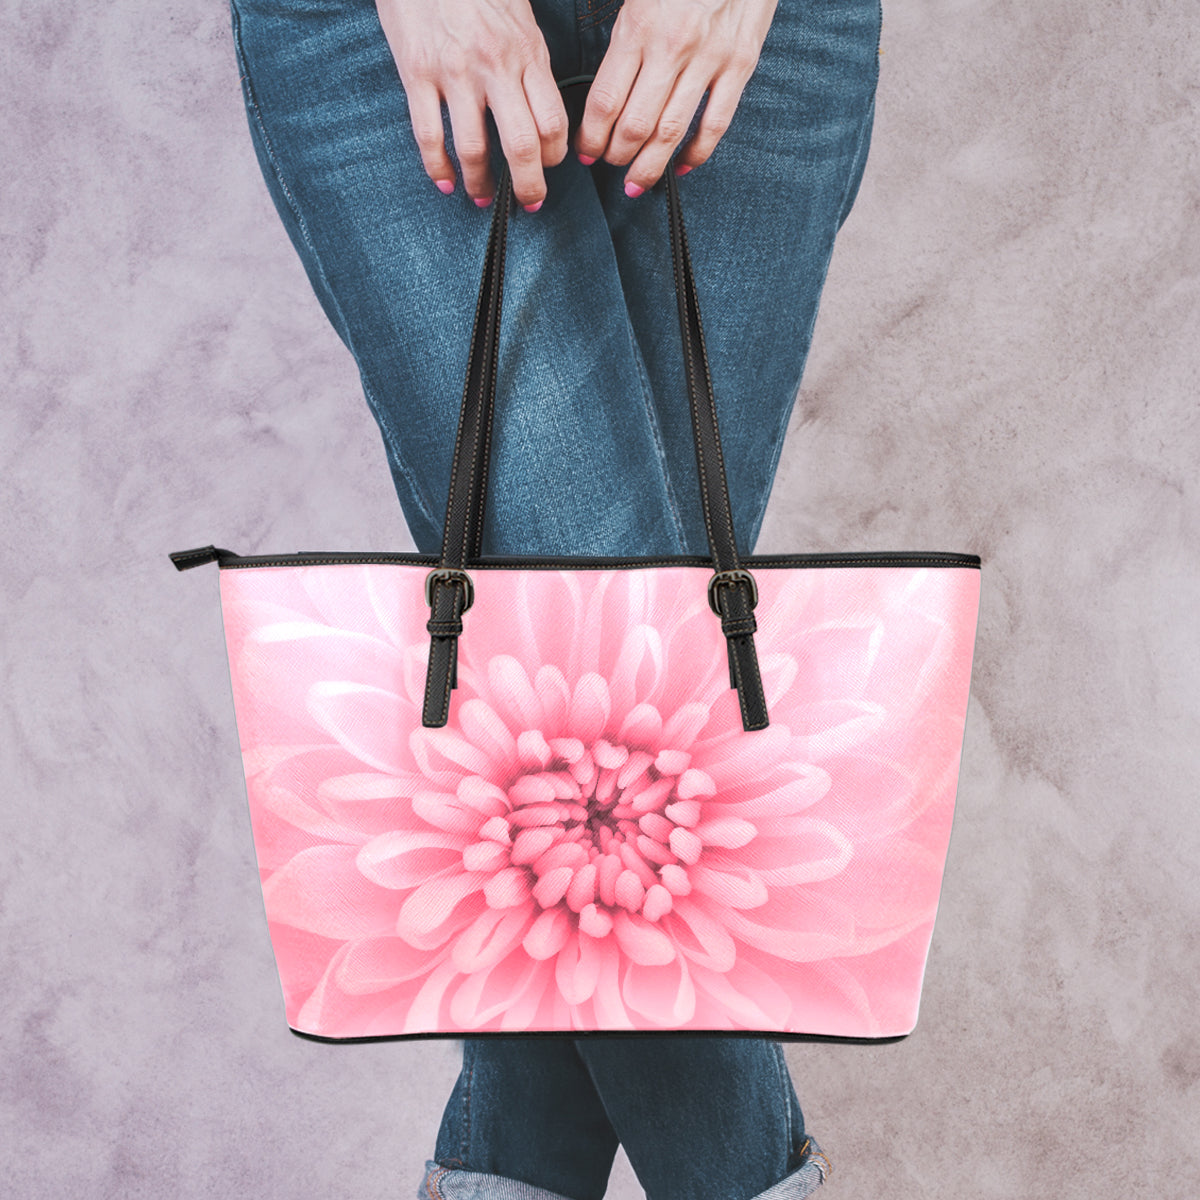 Chrysanthemum Flower Small Leather Tote Bag